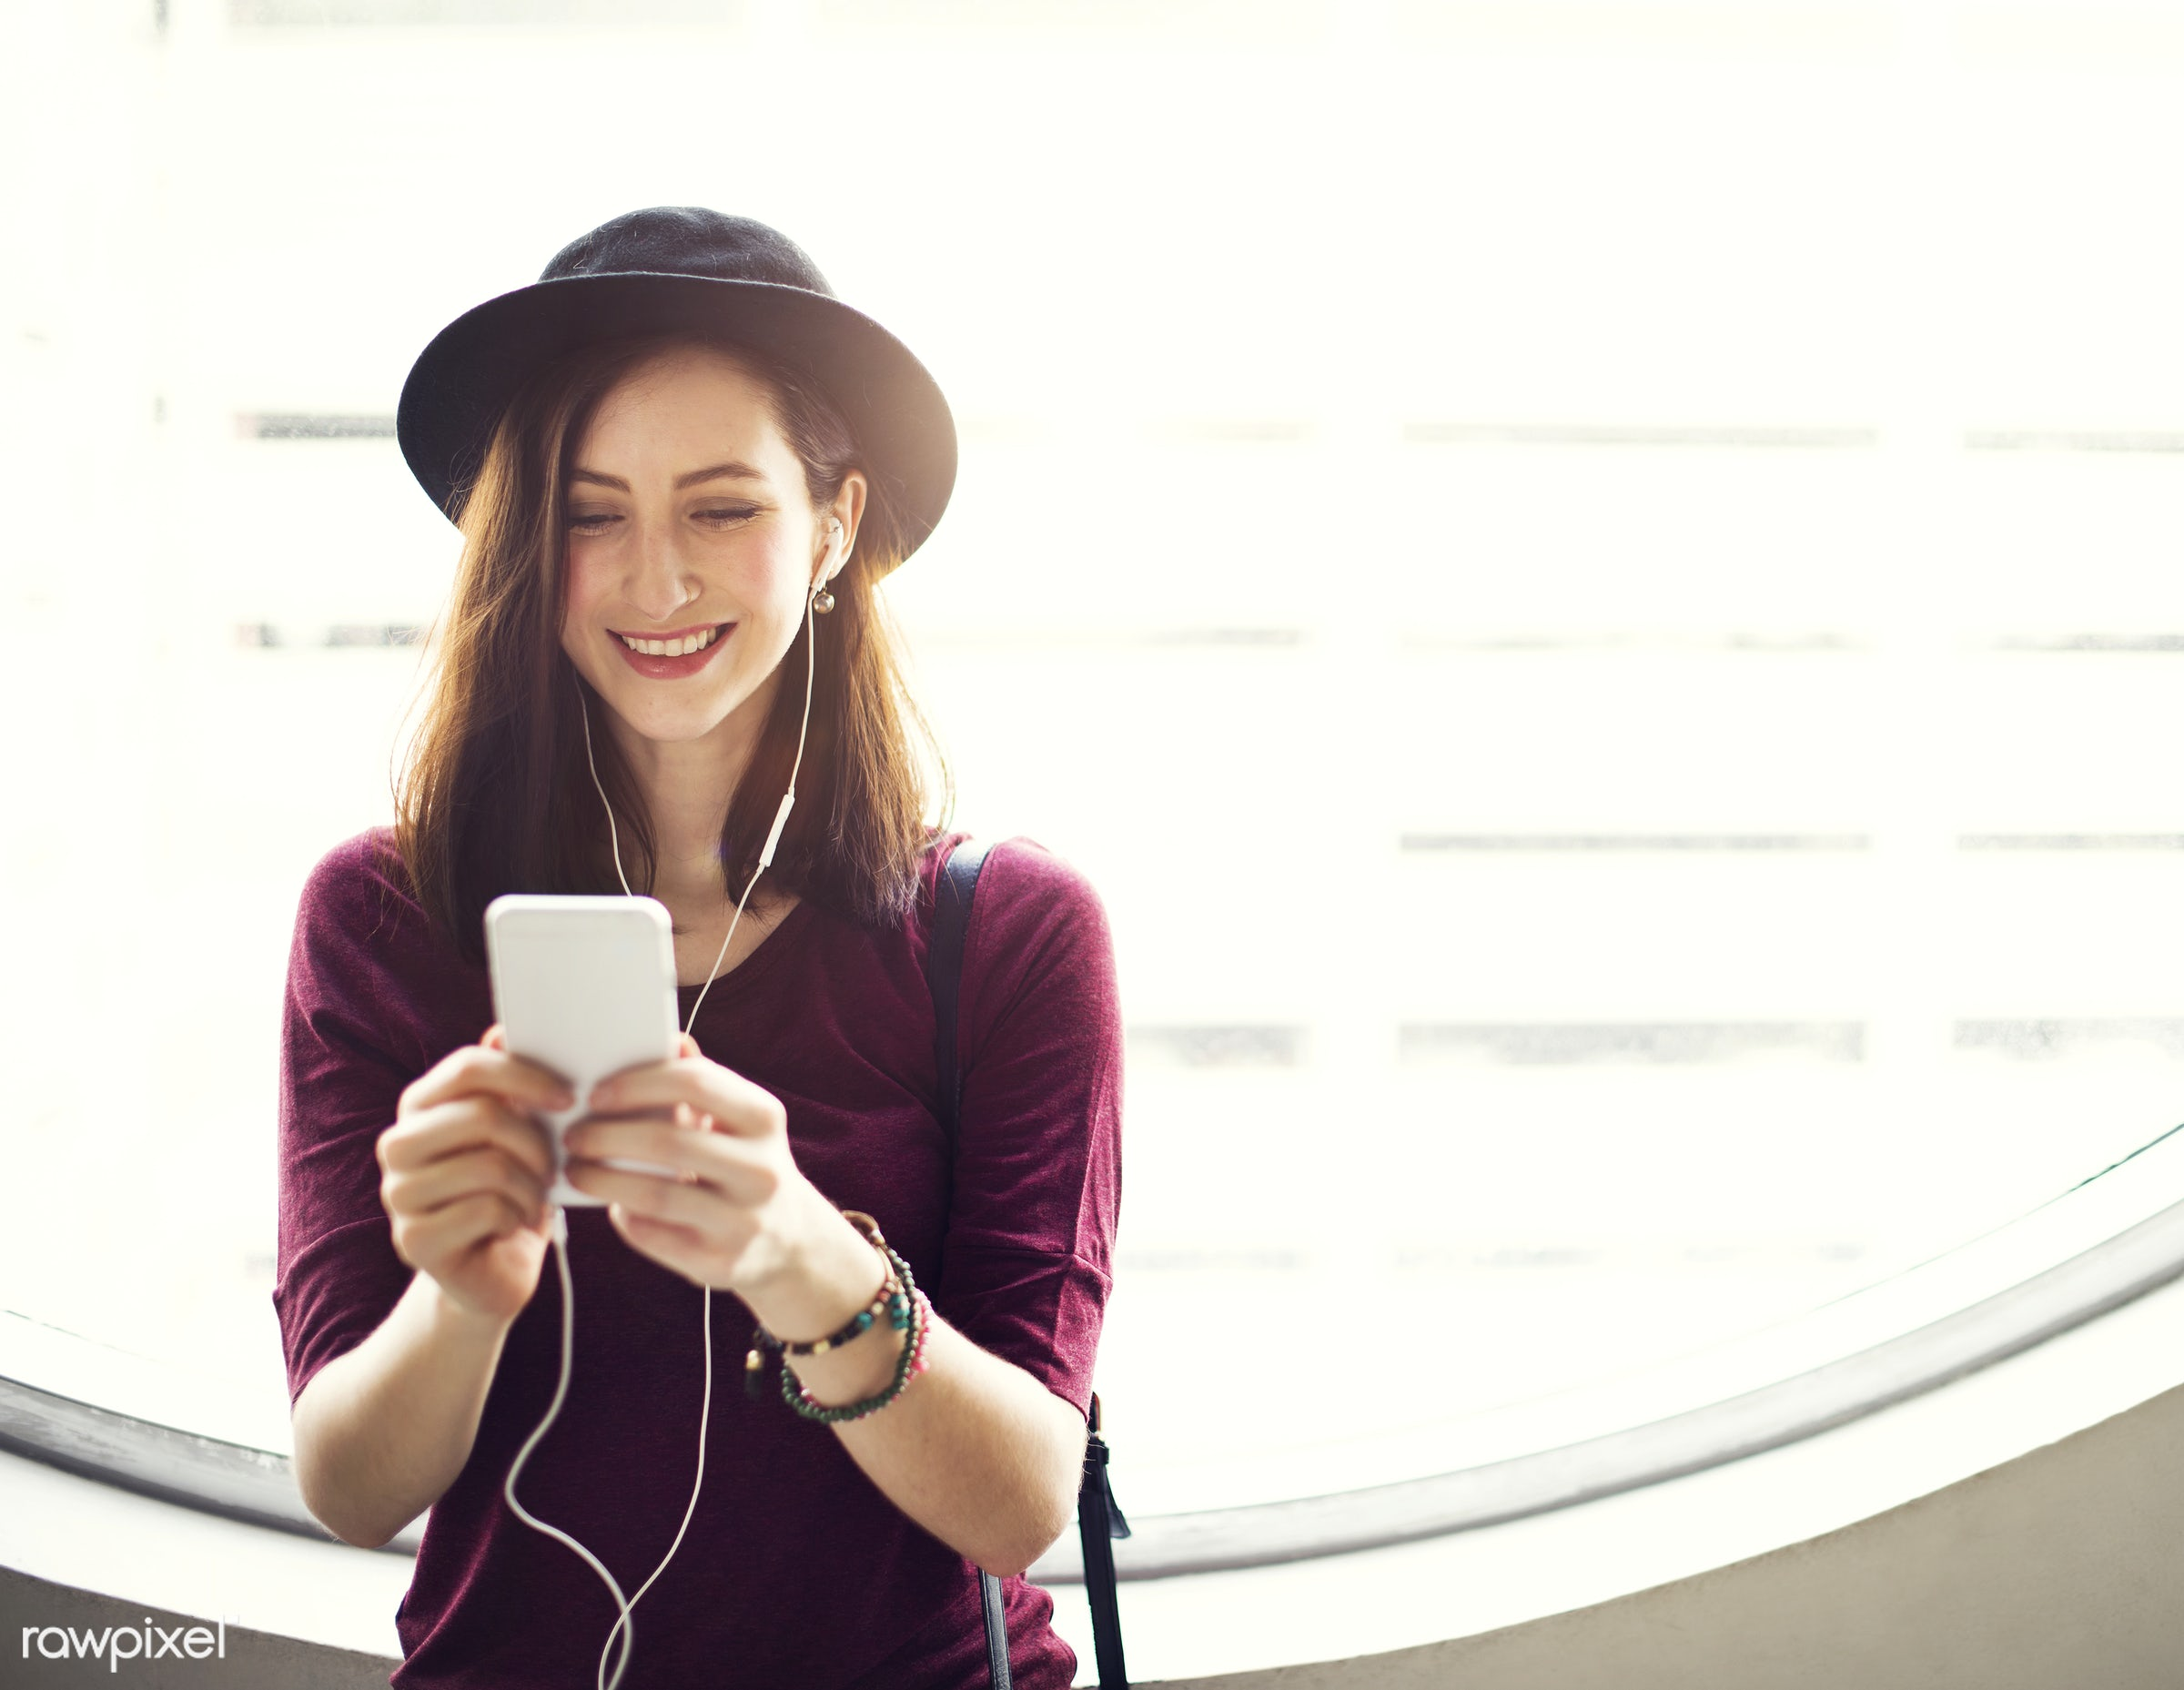 activity, audio equipment, calm, casual, cheerful, chilling, connection, content, device, earphones, electronic, enjoyment,...